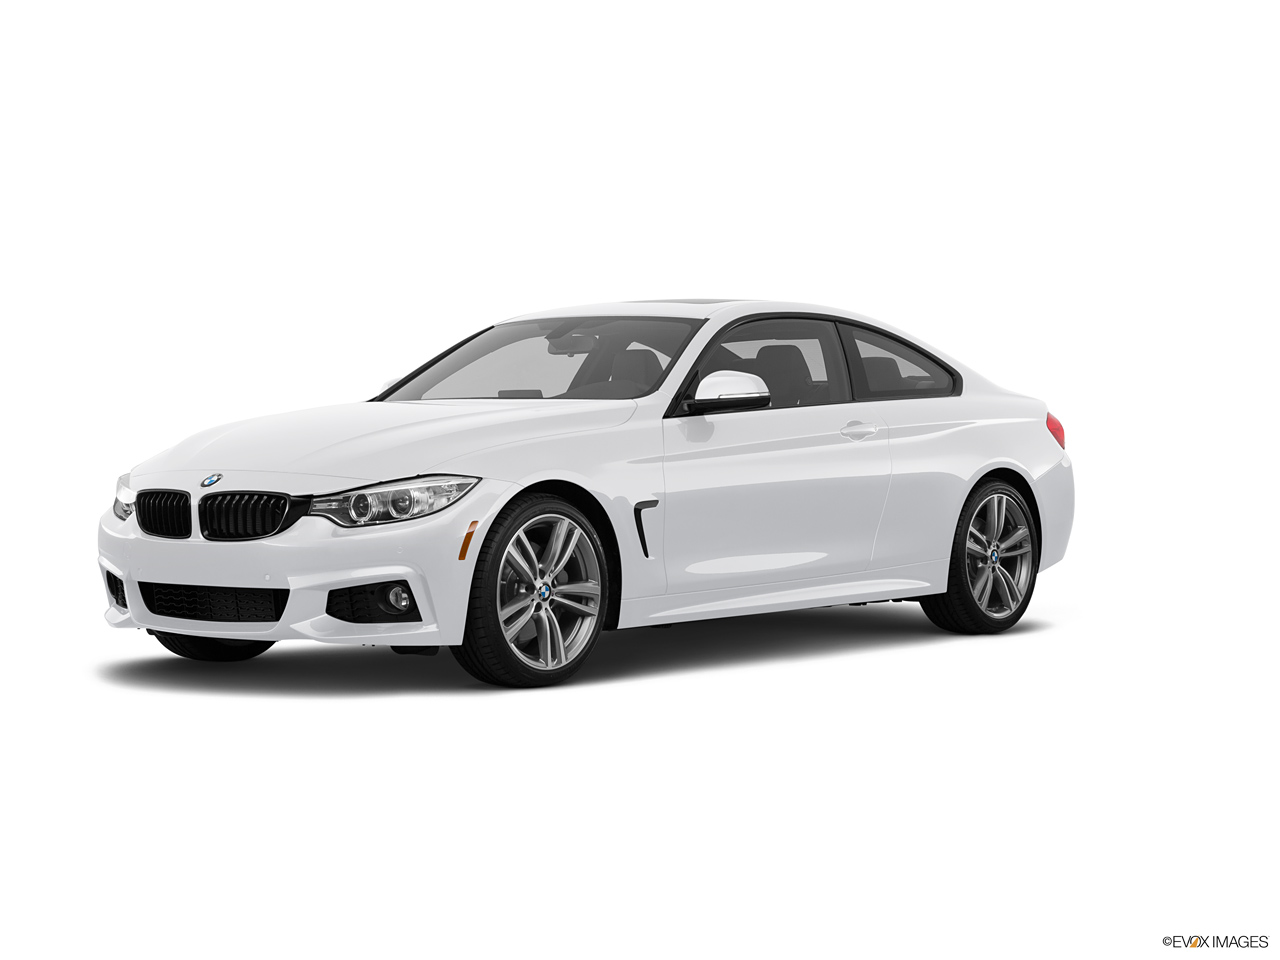 Car pictures list for bmw 4 series coupe 2018 435i qatar yallamotor - Cars la coupe internationale de martin ...